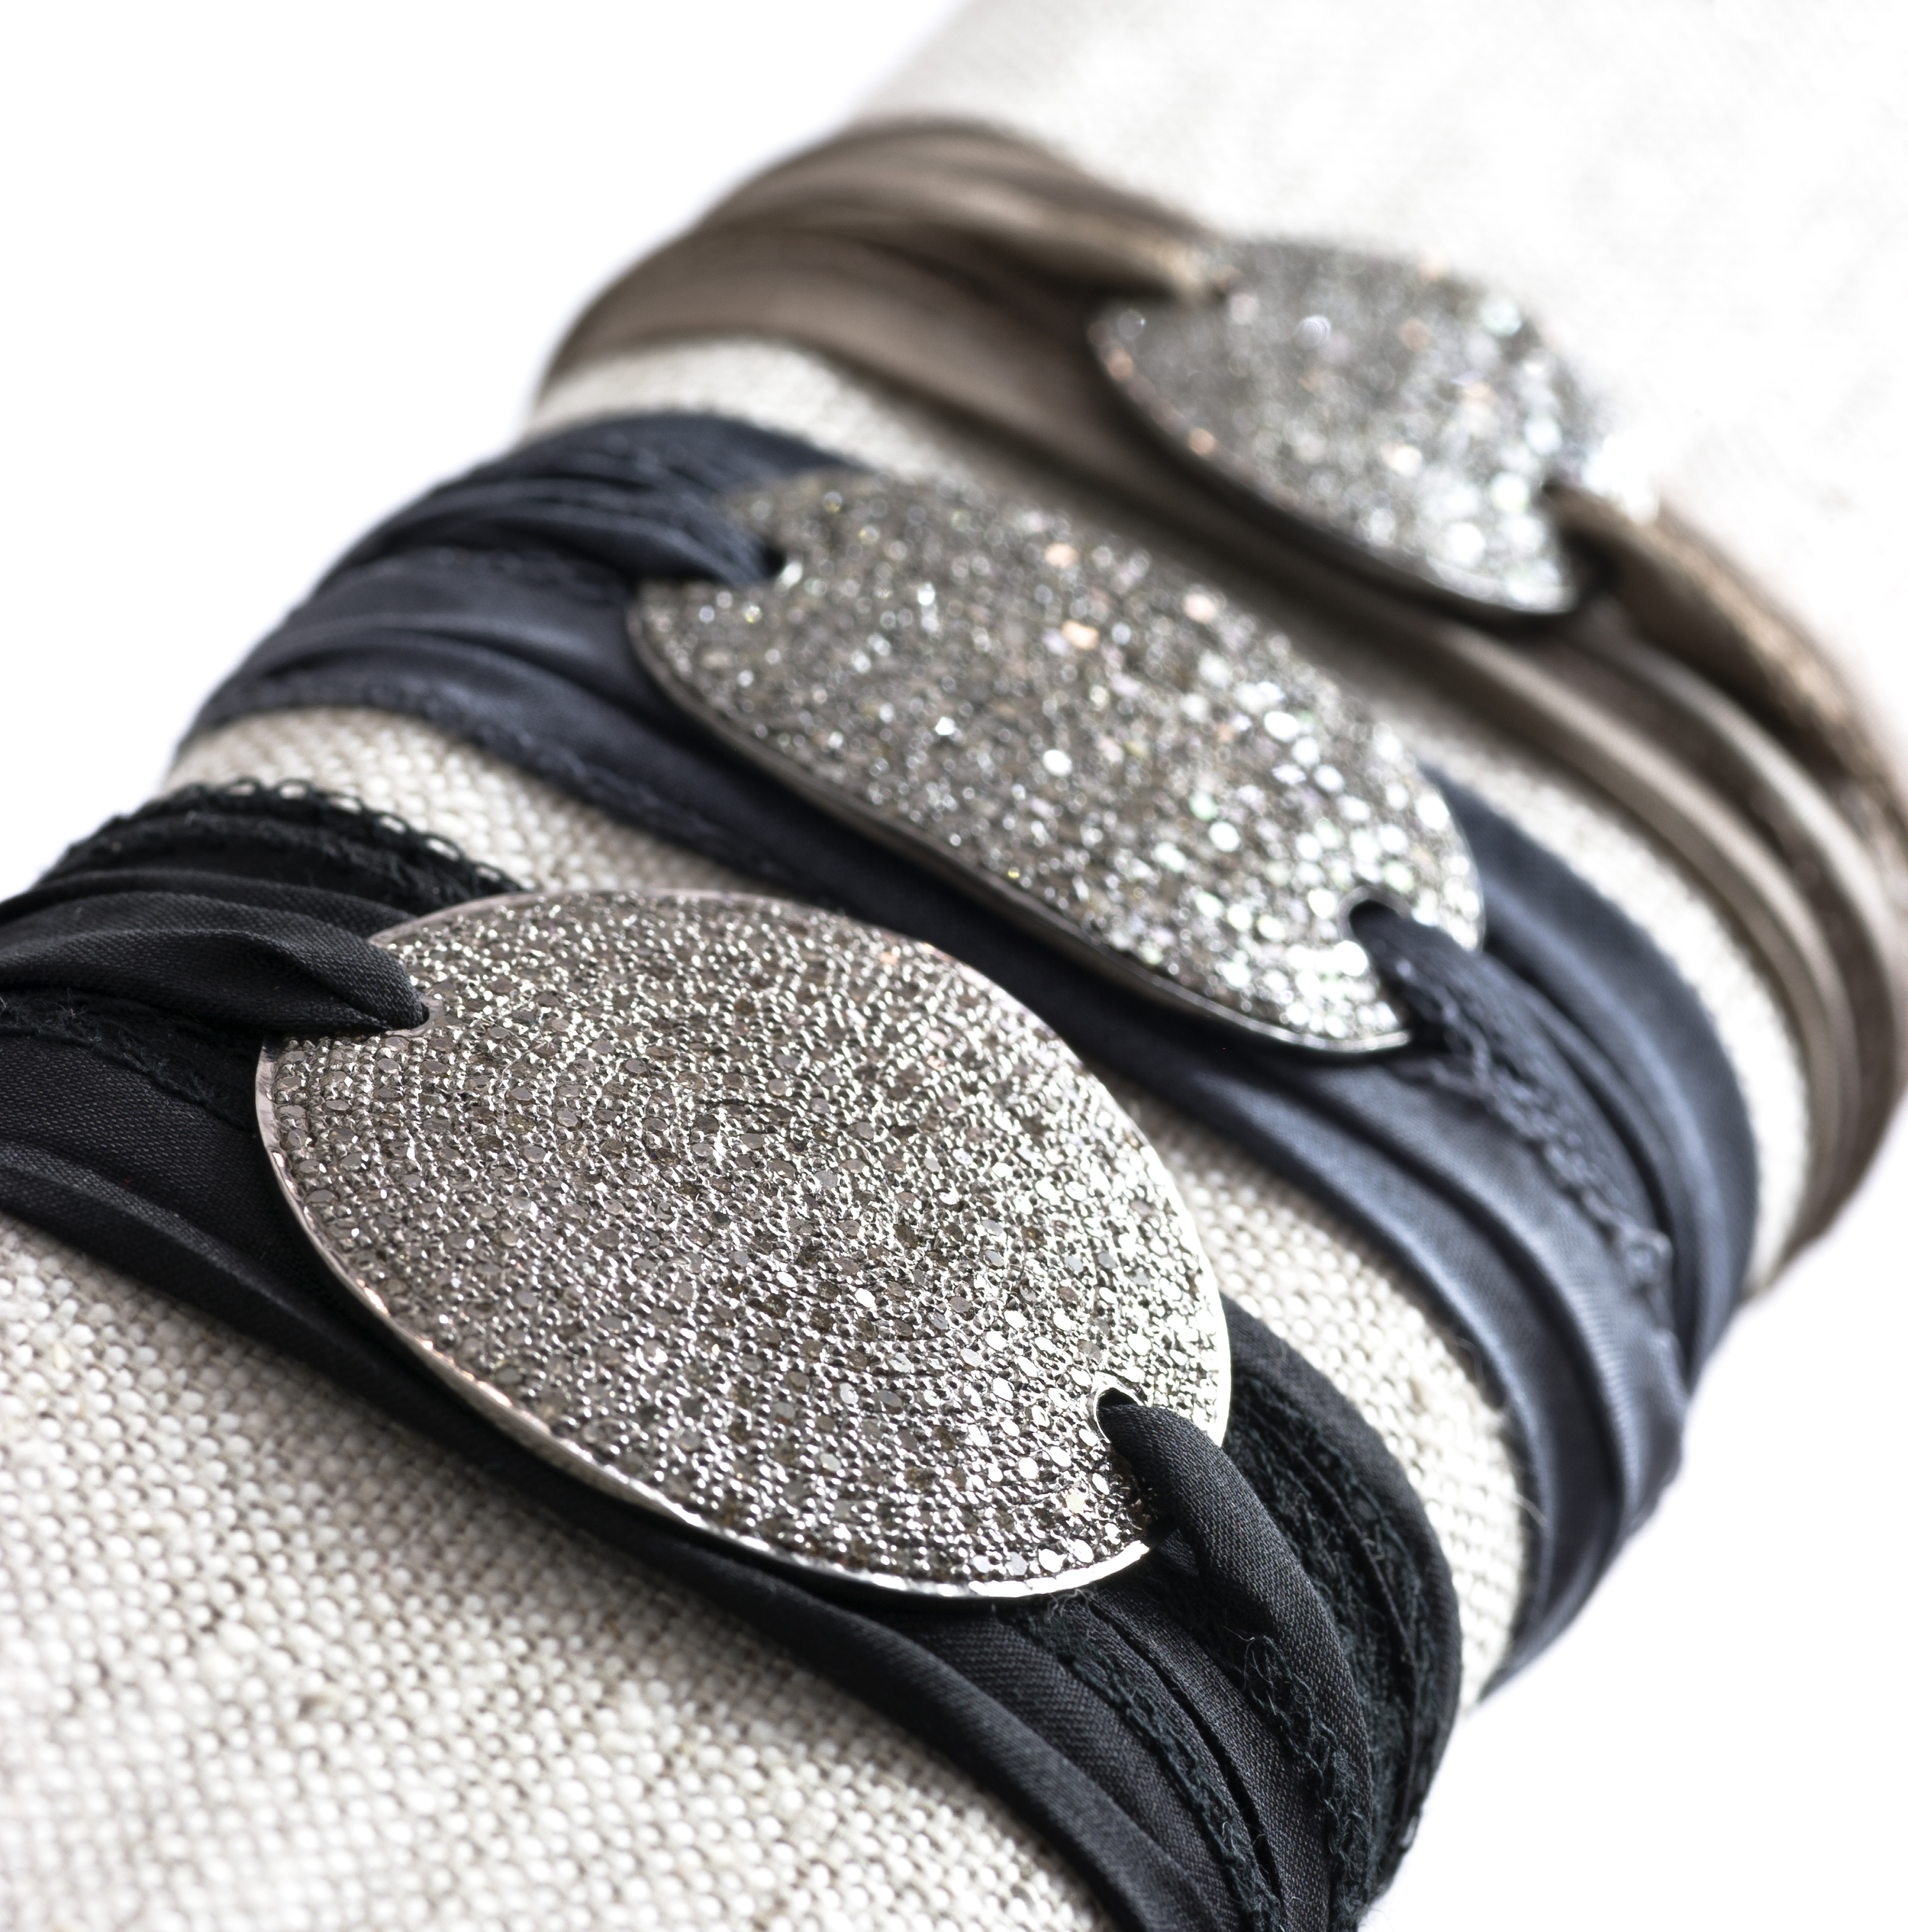 131 three cuff bracelets horizontal 1.jpg